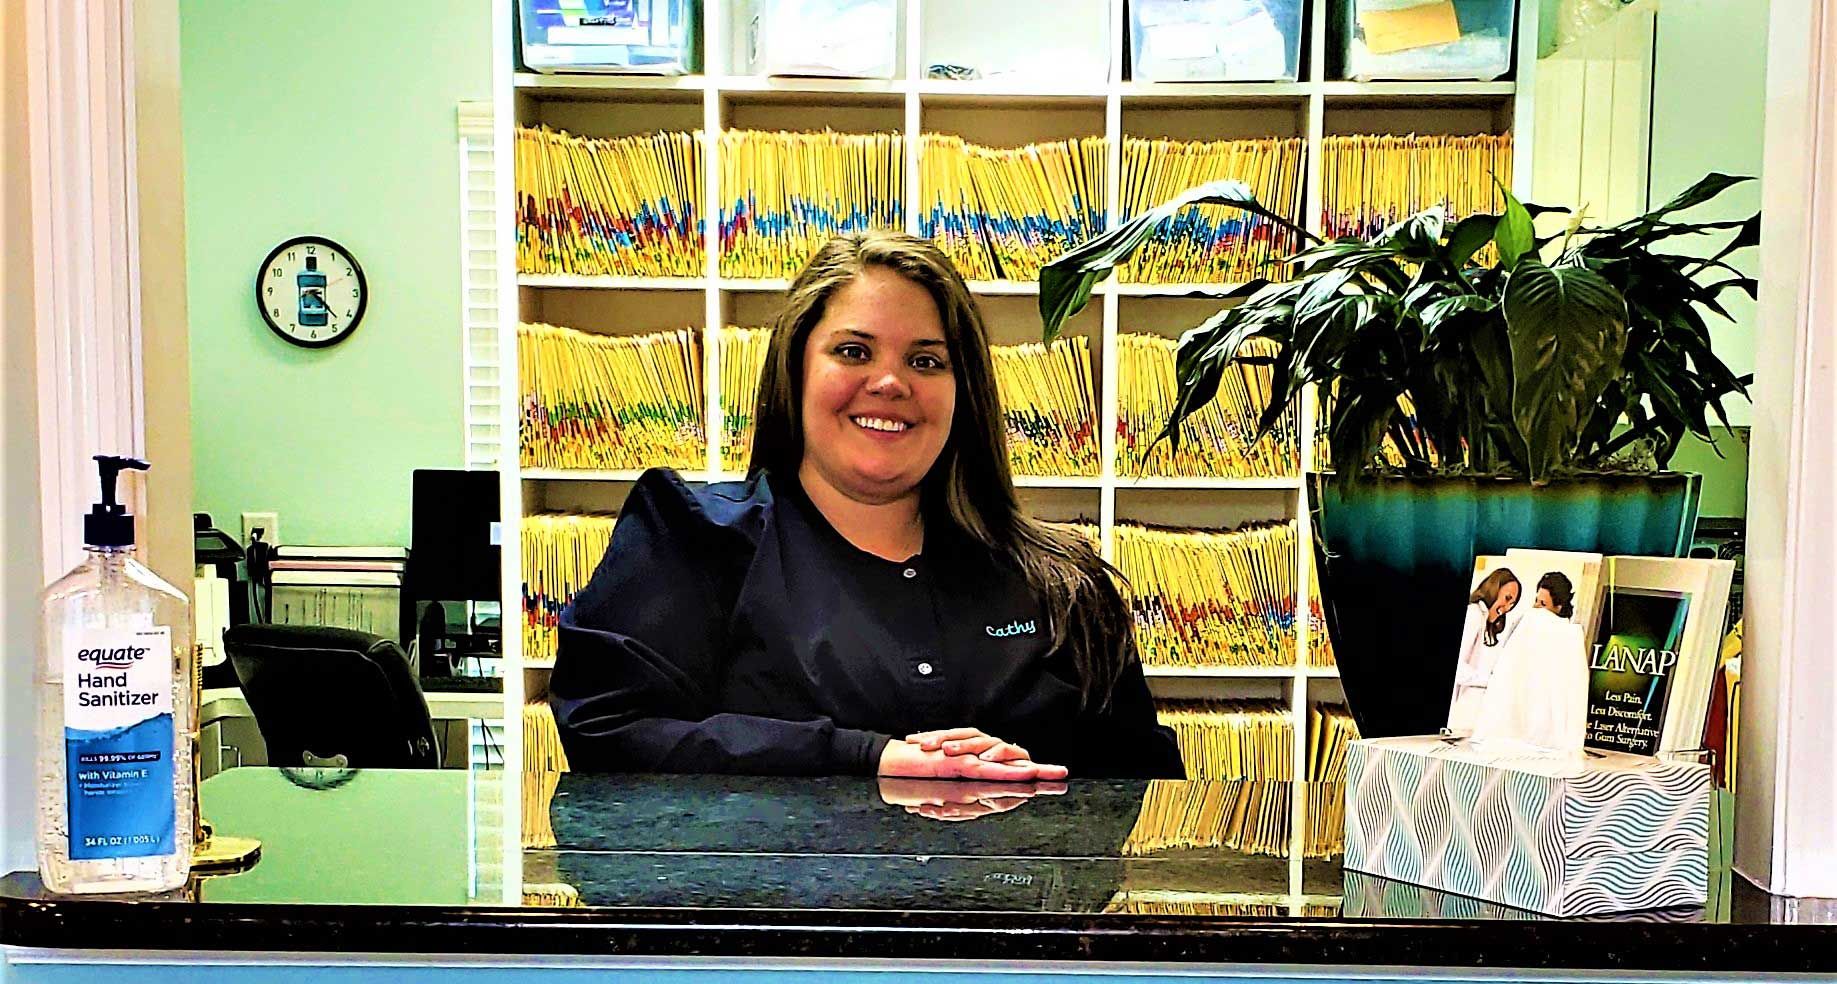 Cathy - Certified Dental Assistant at Augusta Dental Arts